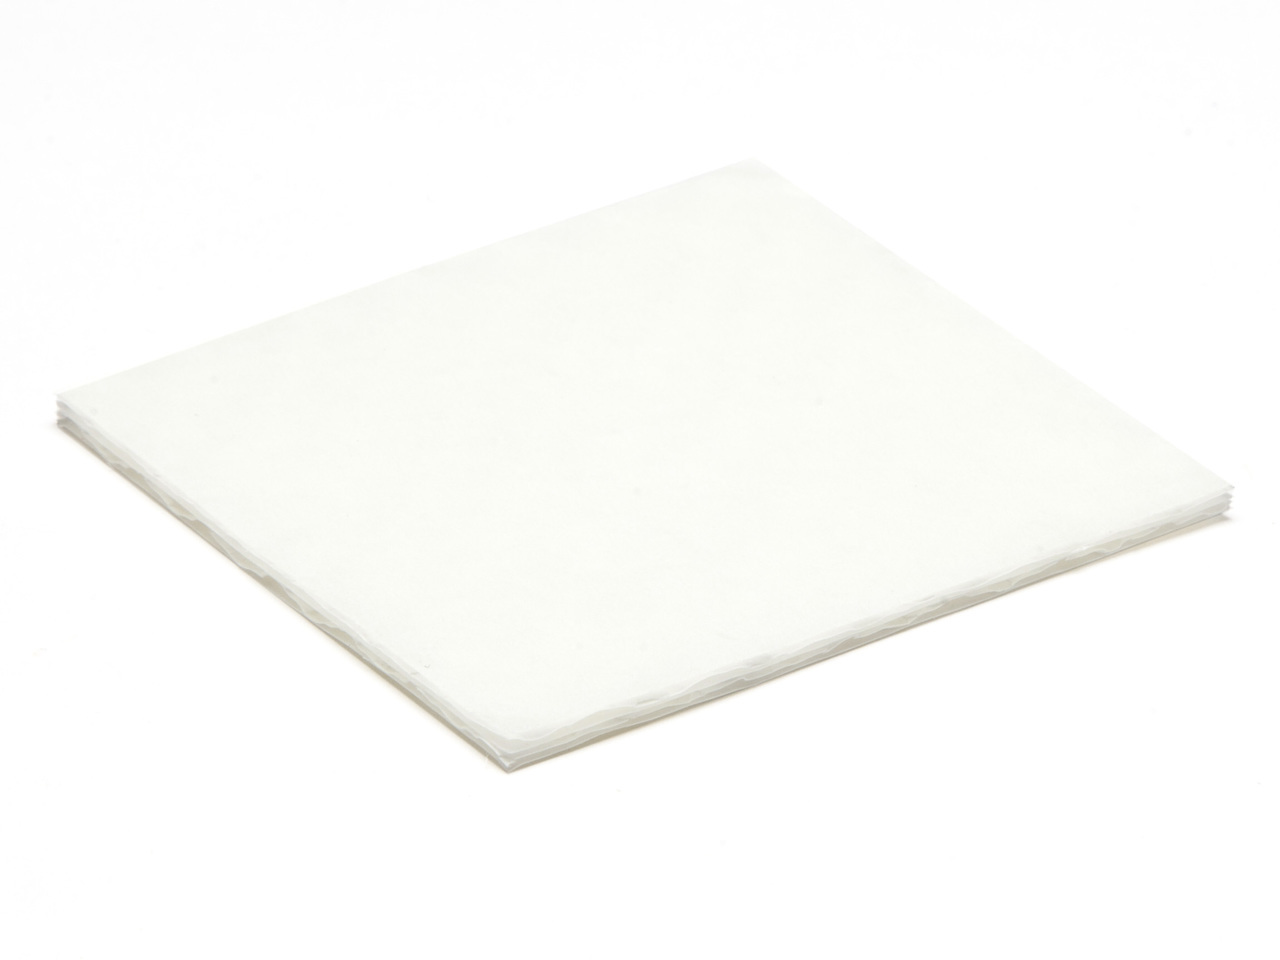 White 4 Choc sized Ballotin Cushion Pad - Confectionery Packaging Insert Pad Ideal for all occasions